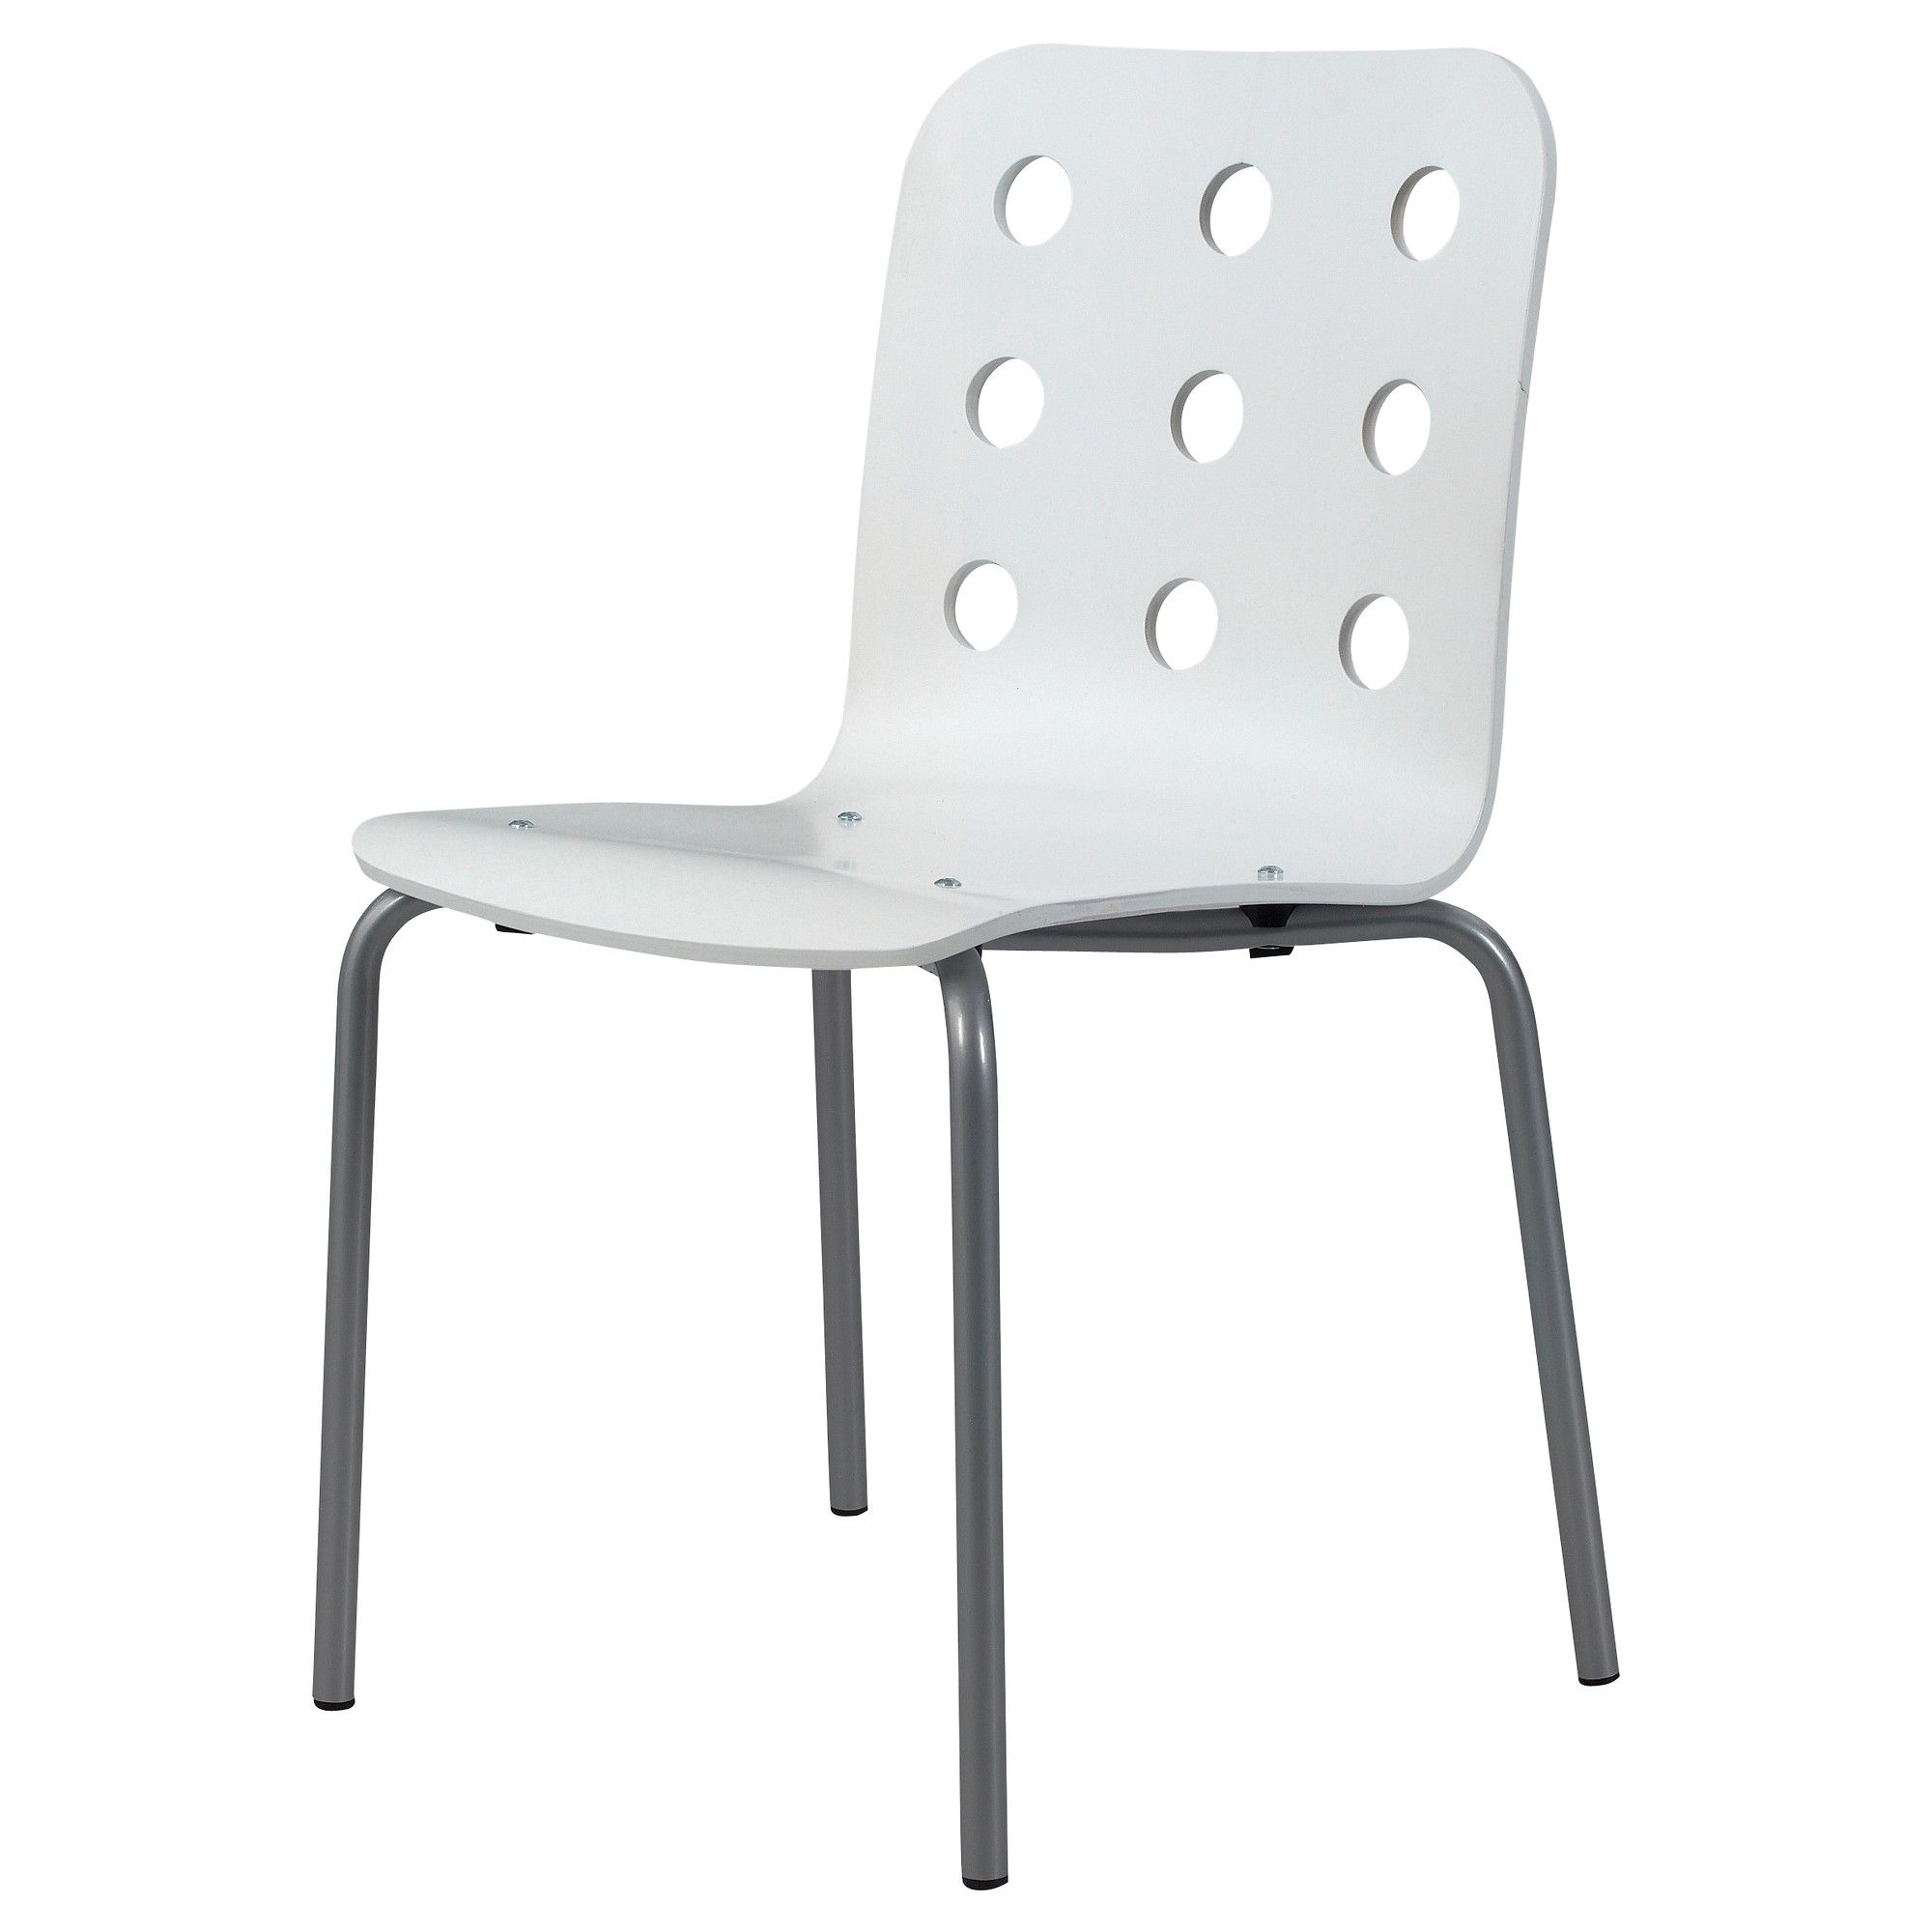 Bedroom Desk Chair Ikea Clear Acrylic Jules Visitor White Silver Color 35 Also